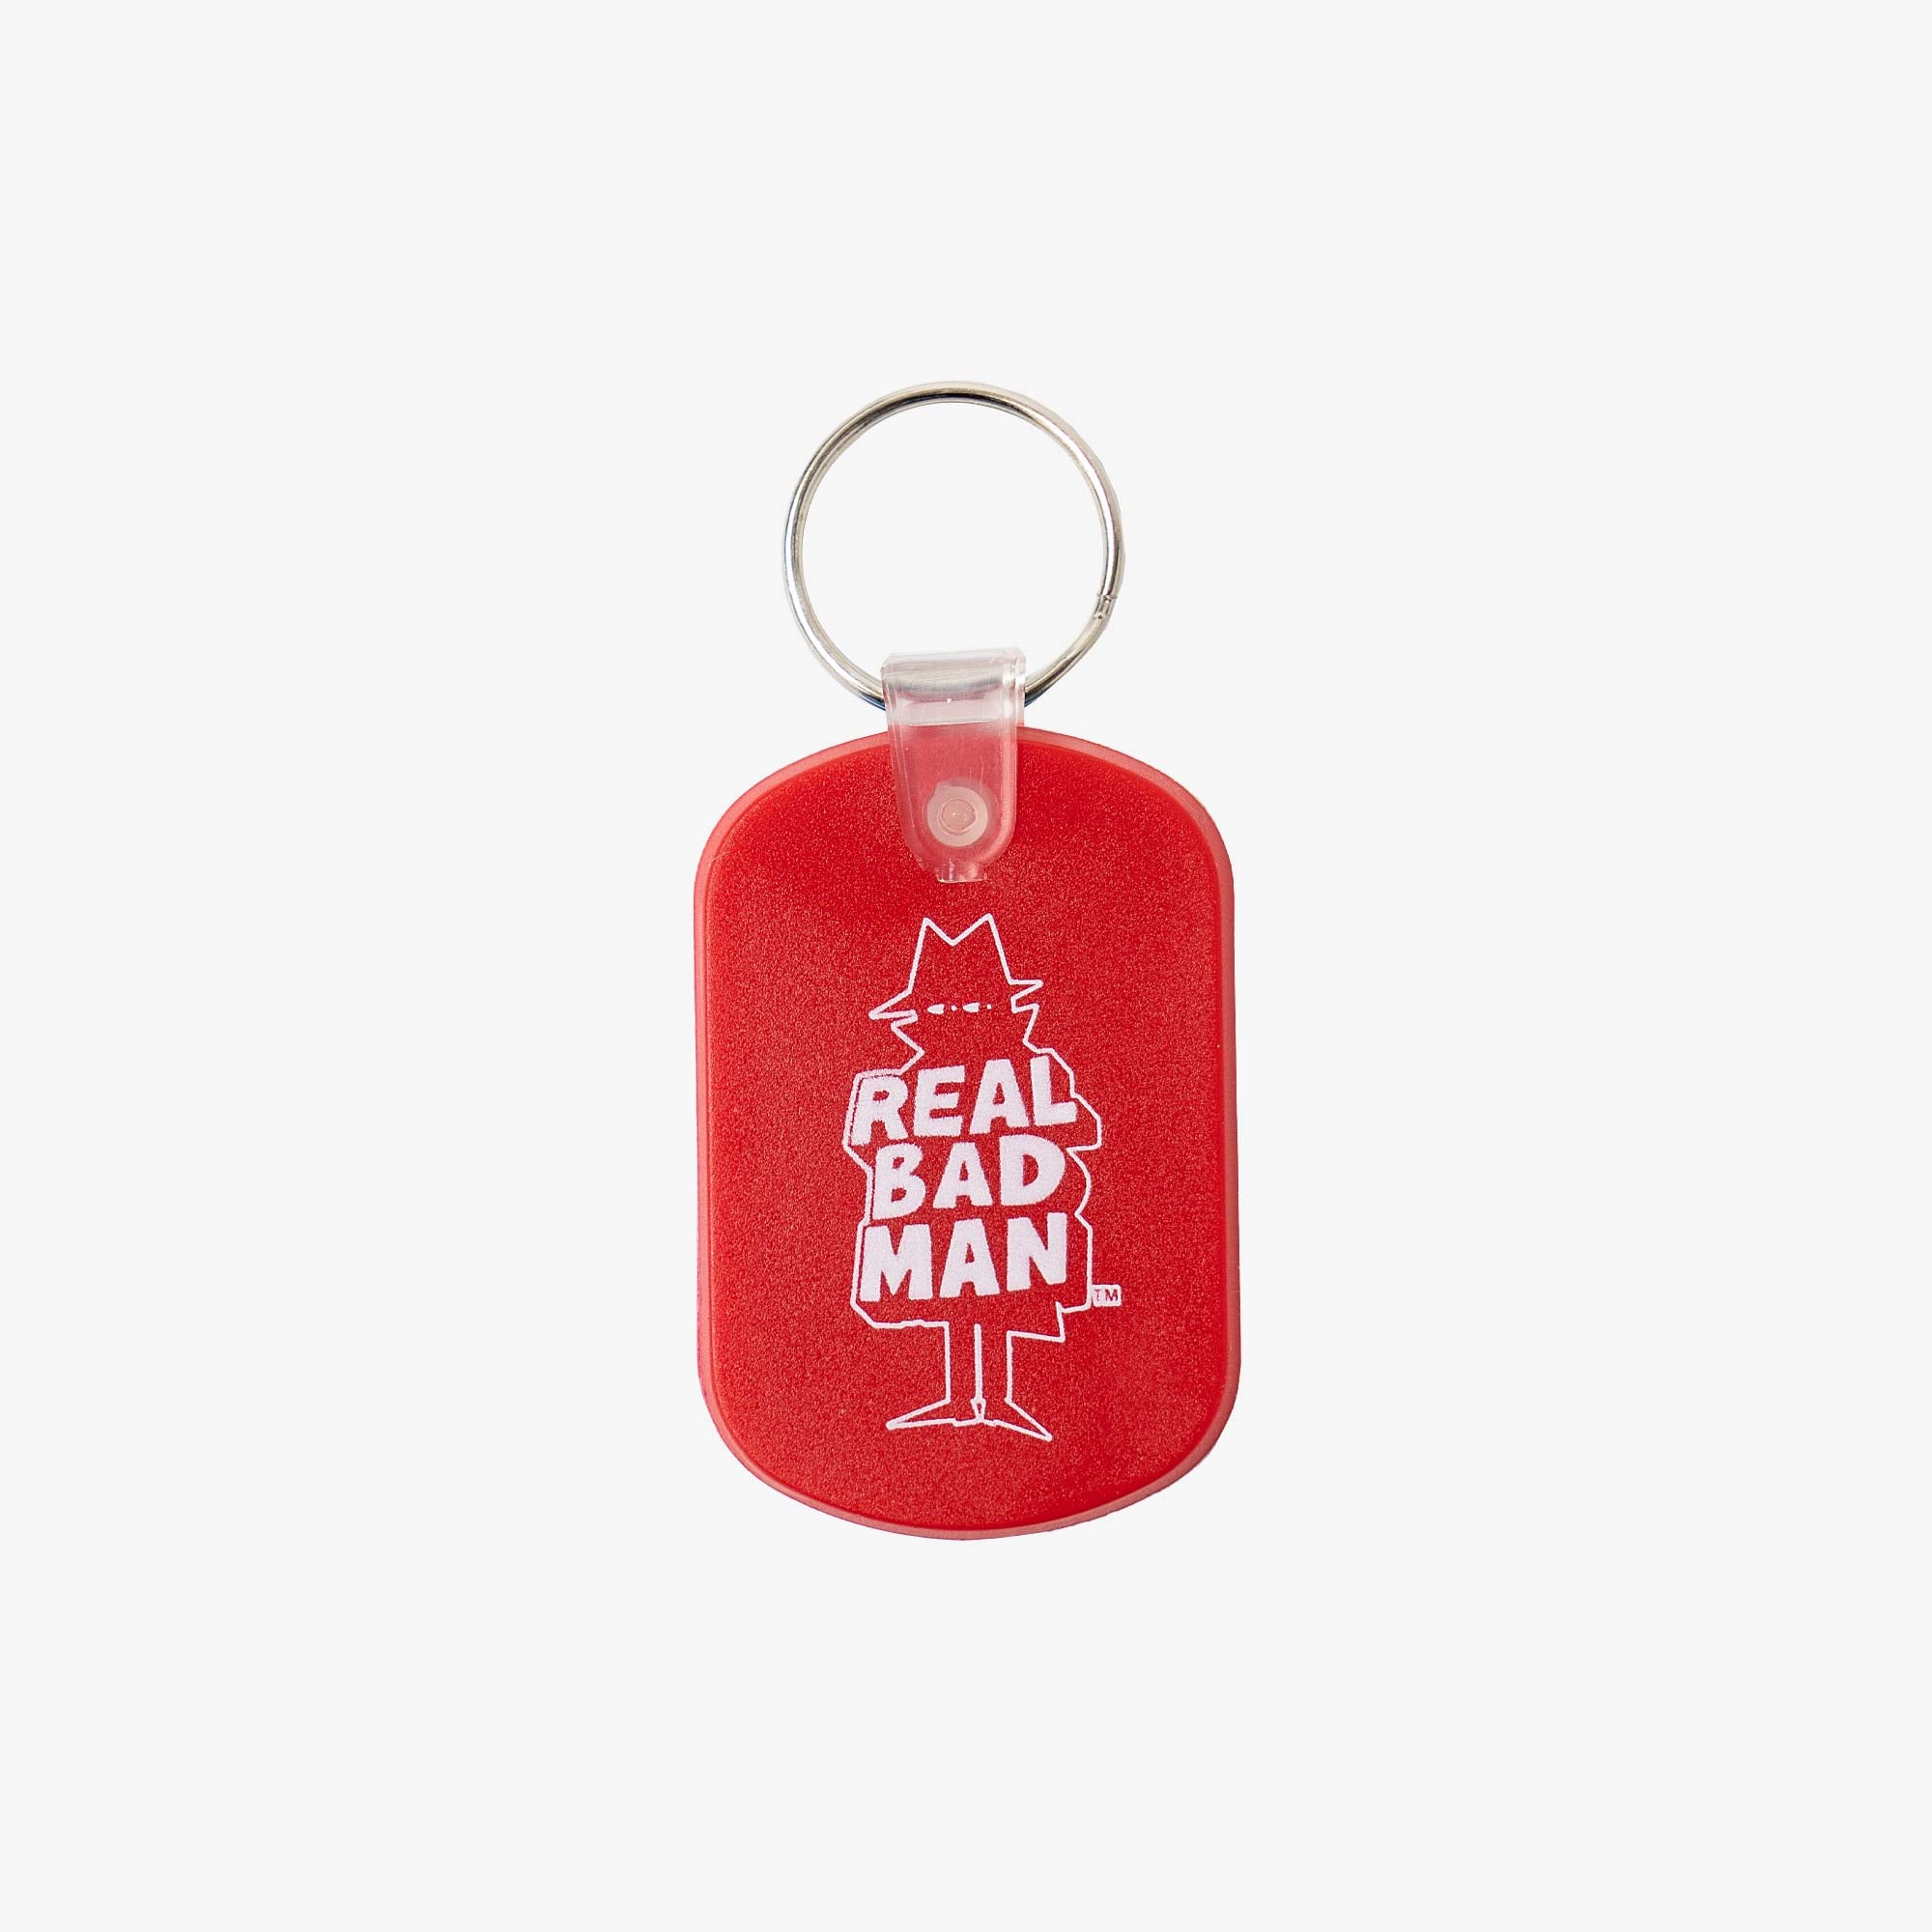 Real Bad Man Guest Key Chain - Red 1